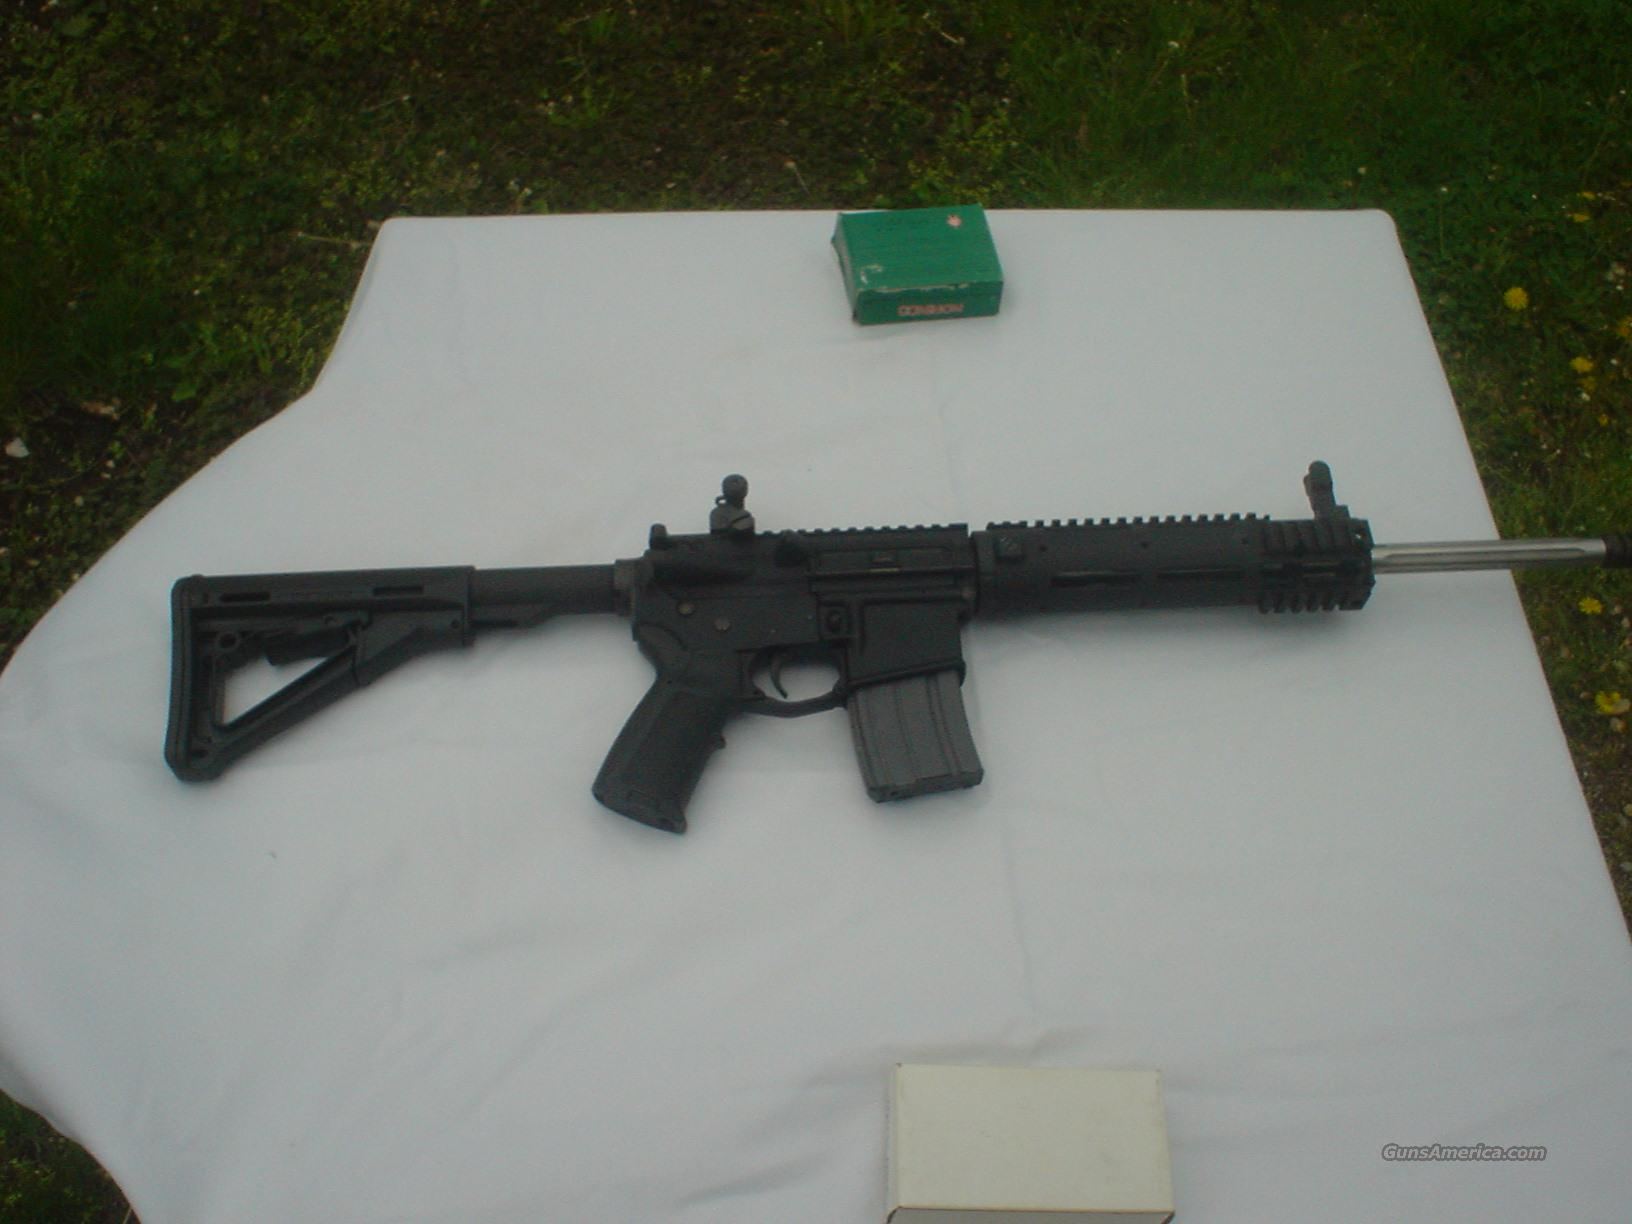 U. S. Tactical Arms, Corp. TAC-15  Guns > Rifles > AR-15 Rifles - Small Manufacturers > Complete Rifle